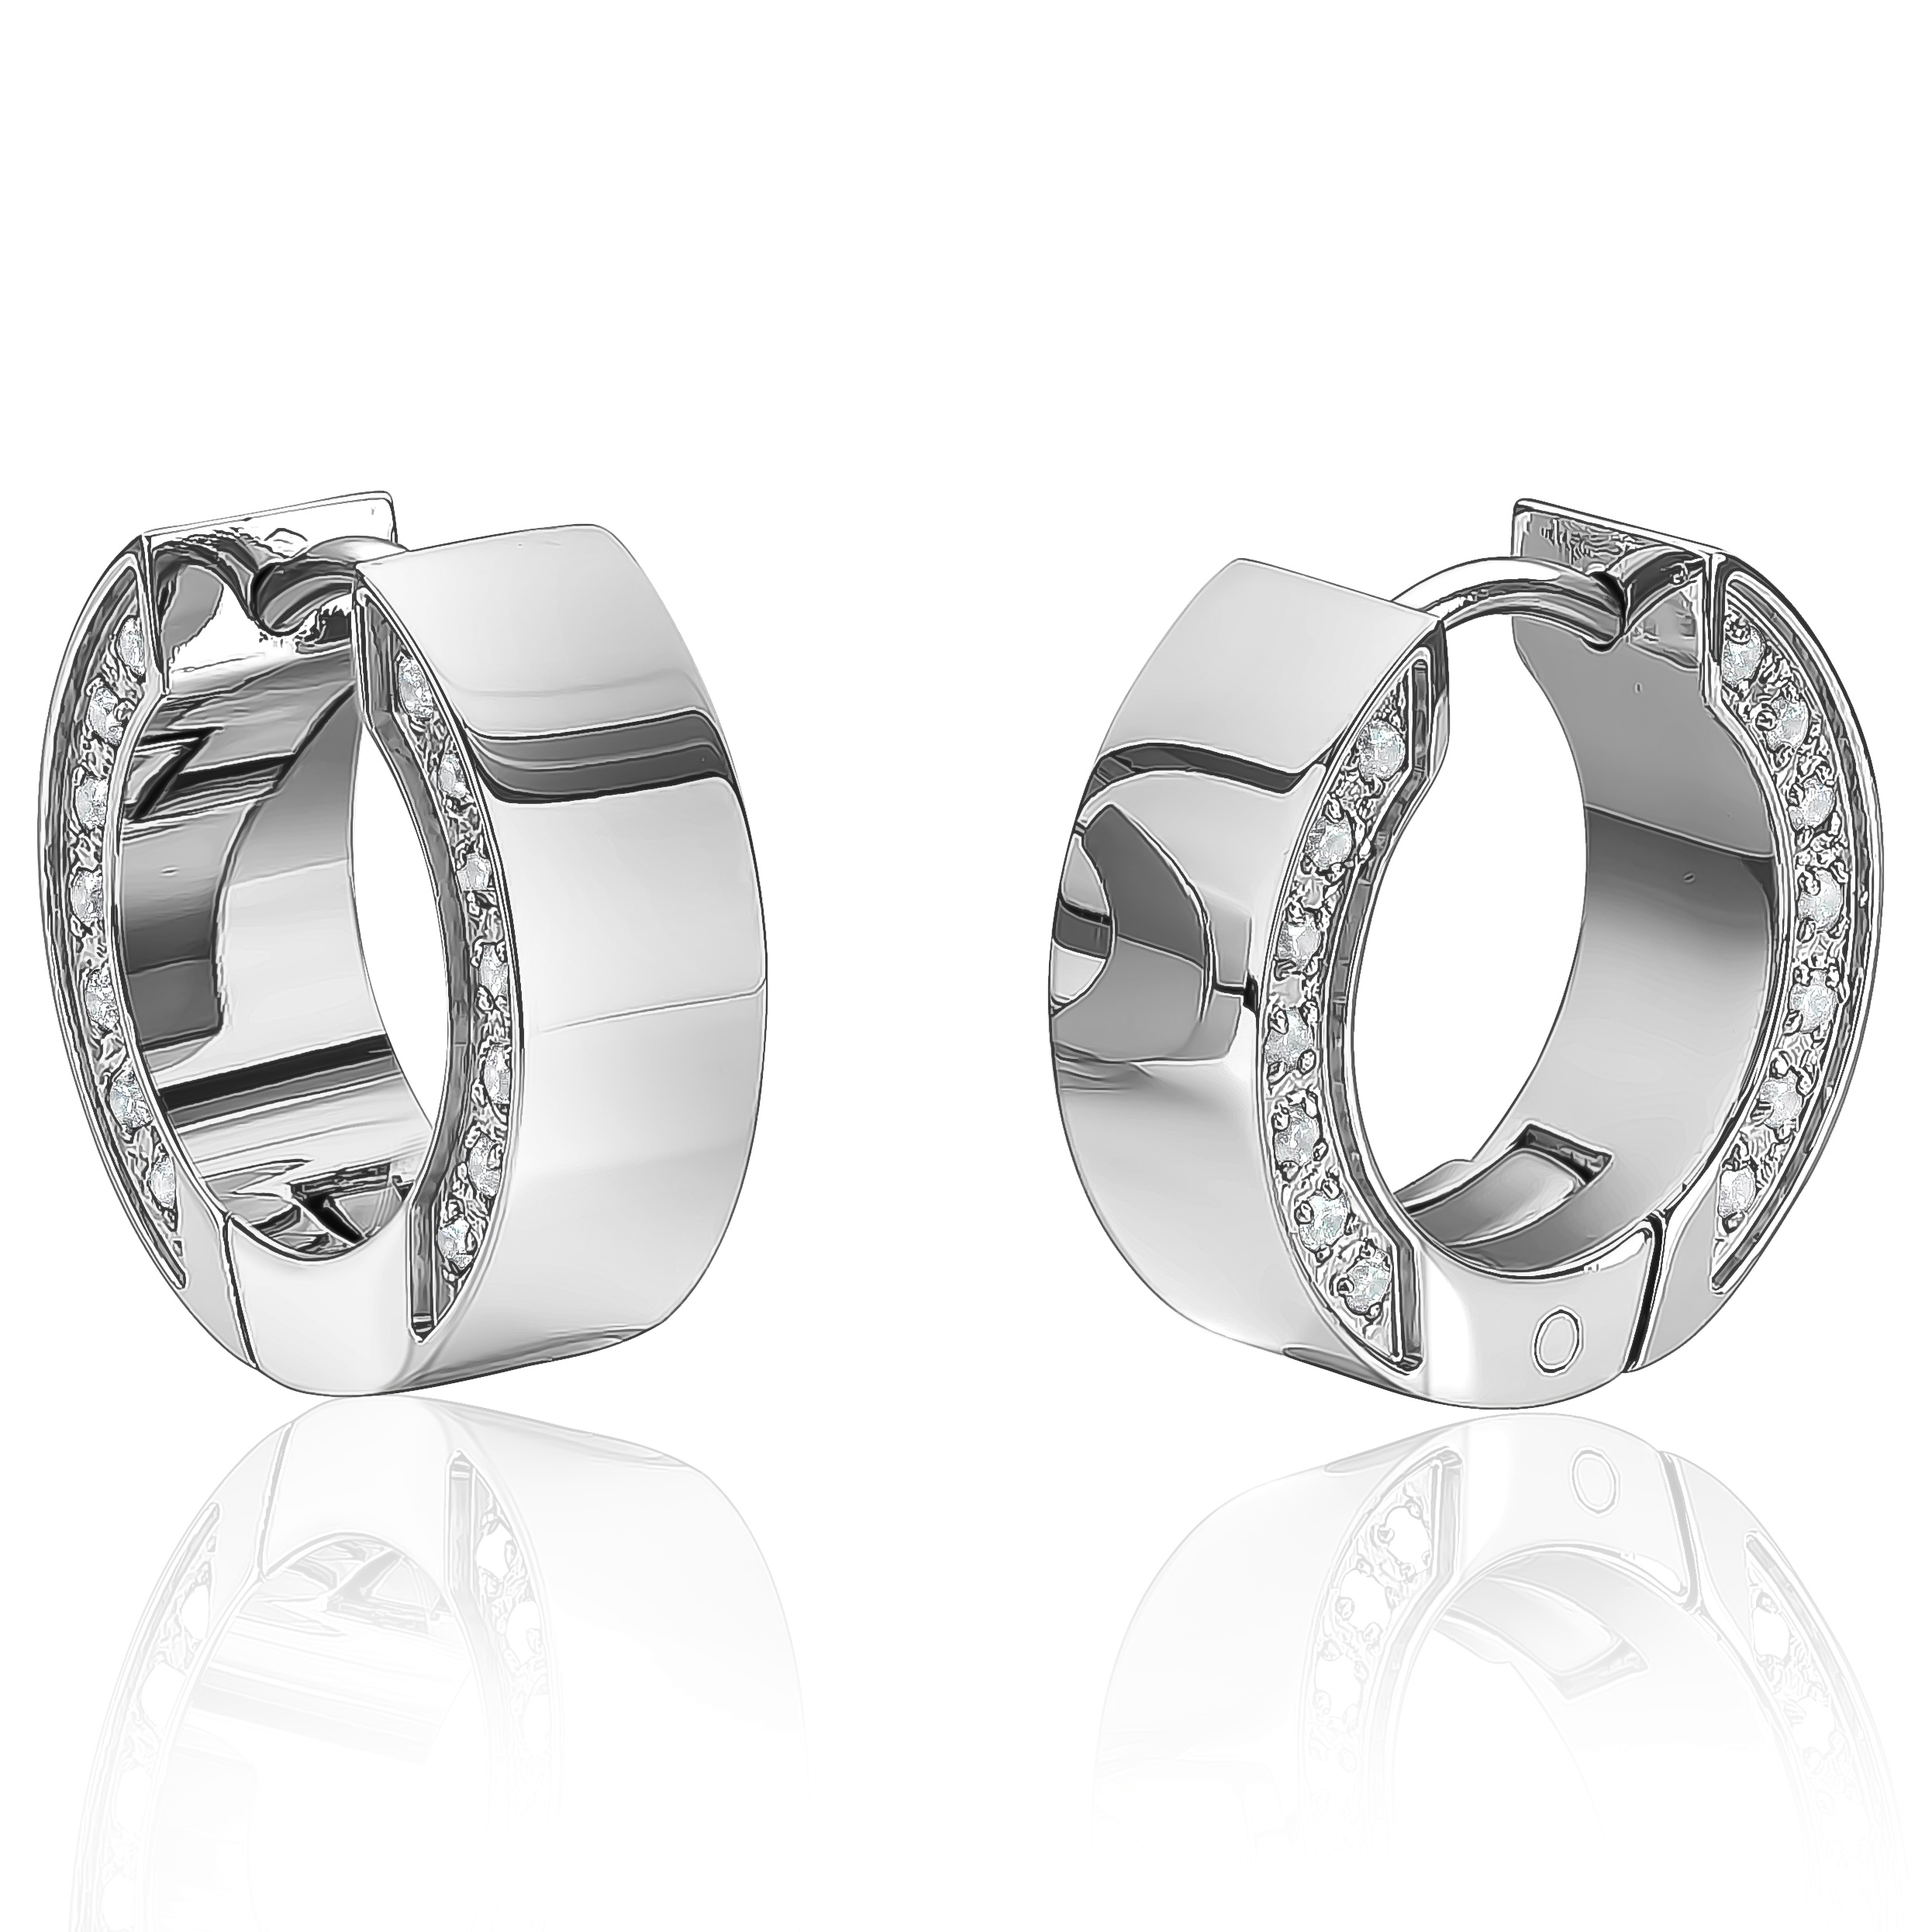 Huggies earrings for women - Stainless steel & Cubic zirconia